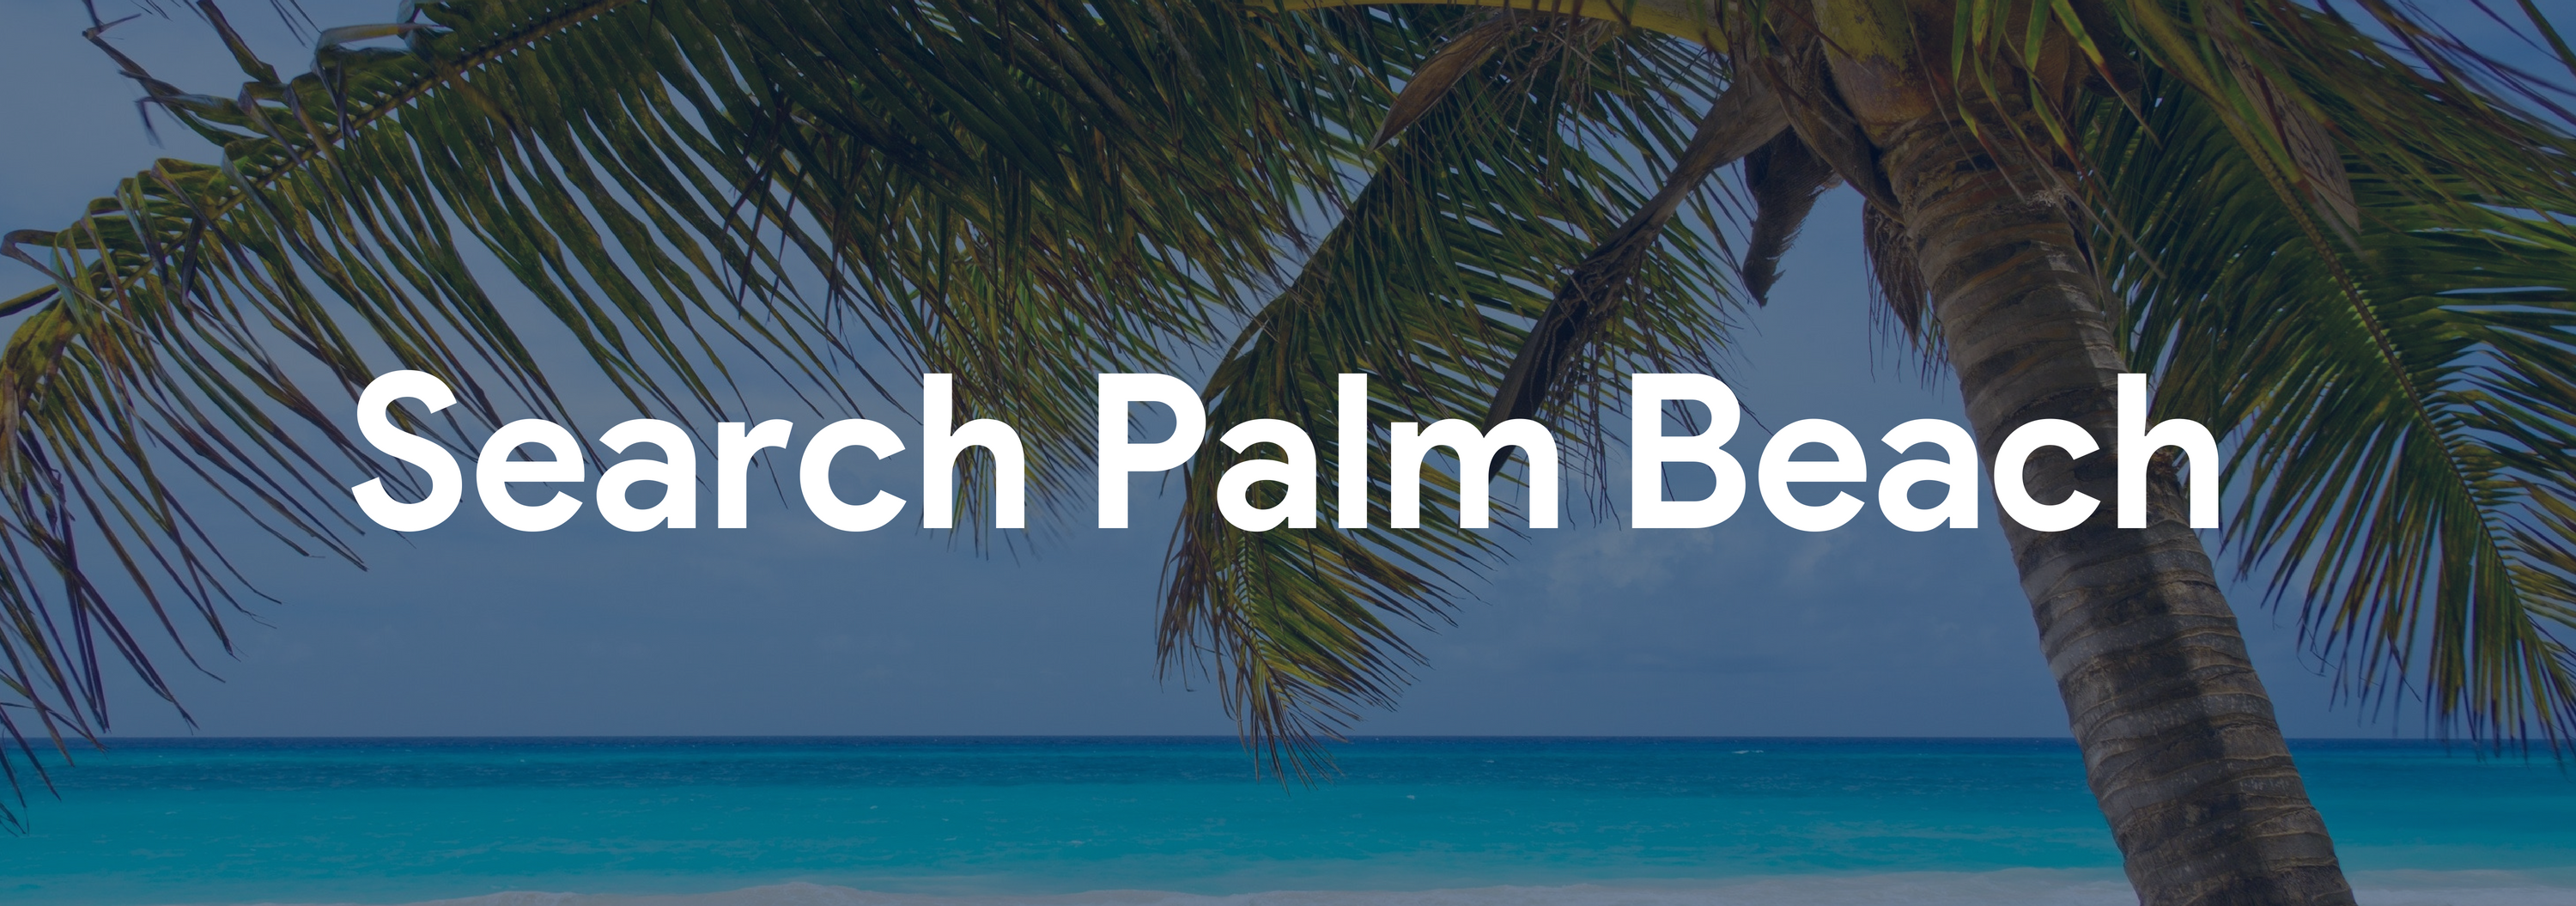 Search Palm Beach